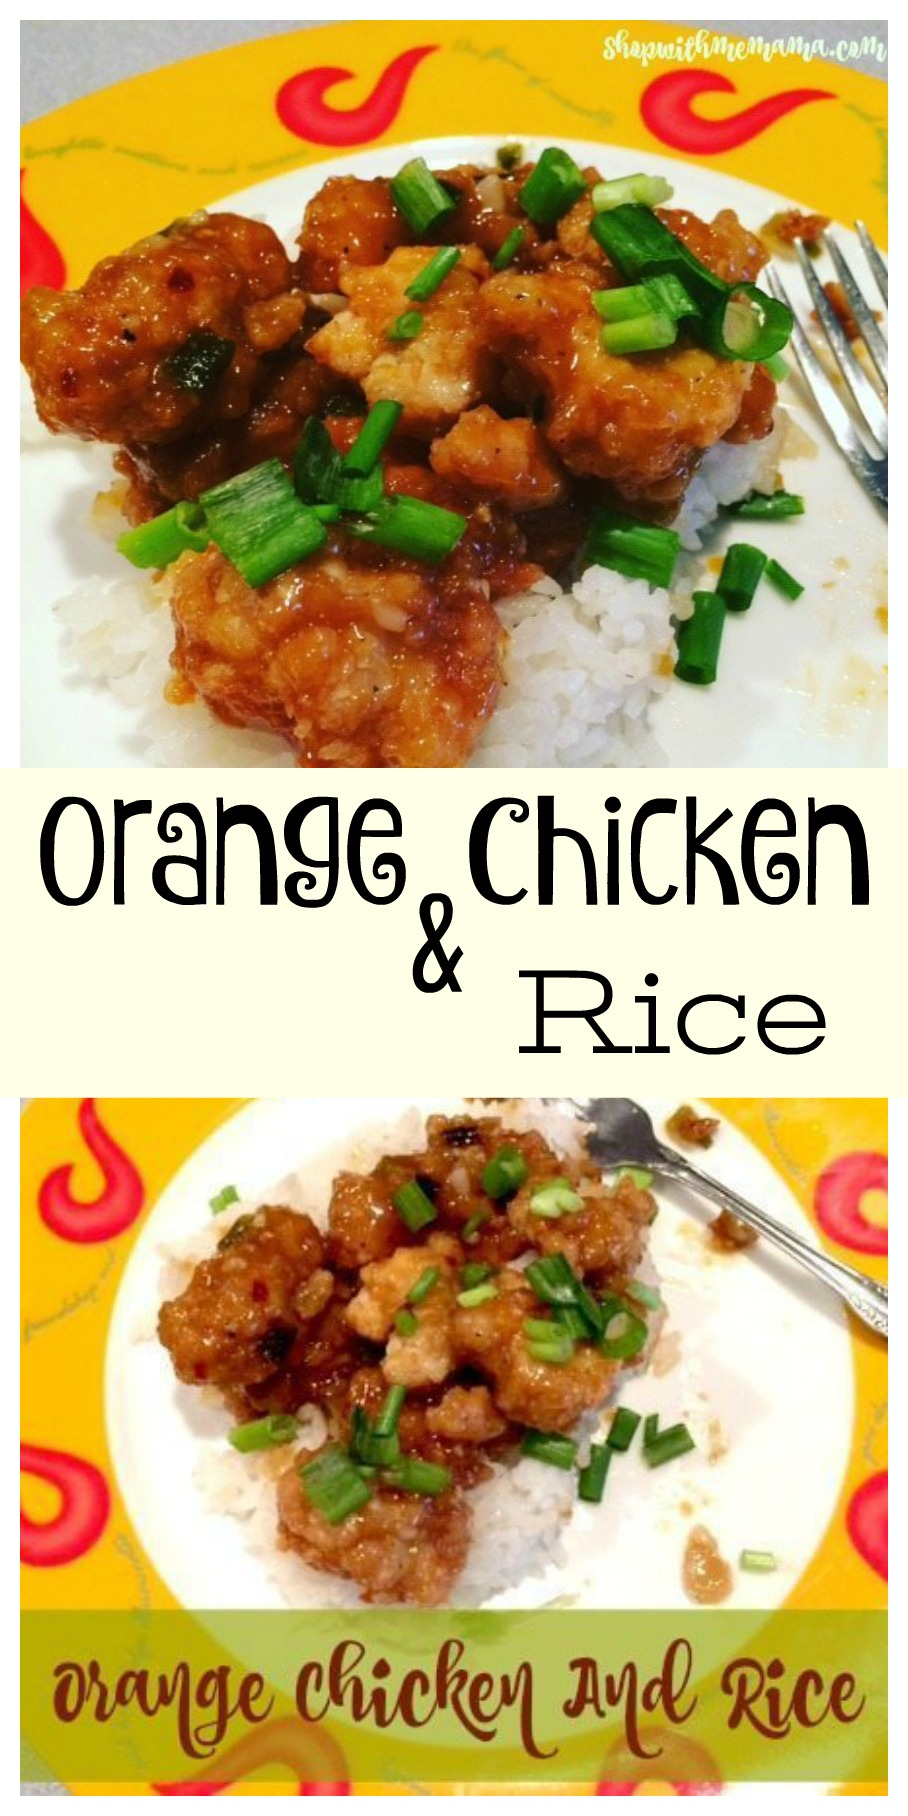 Delicious Orange Chicken and Rice